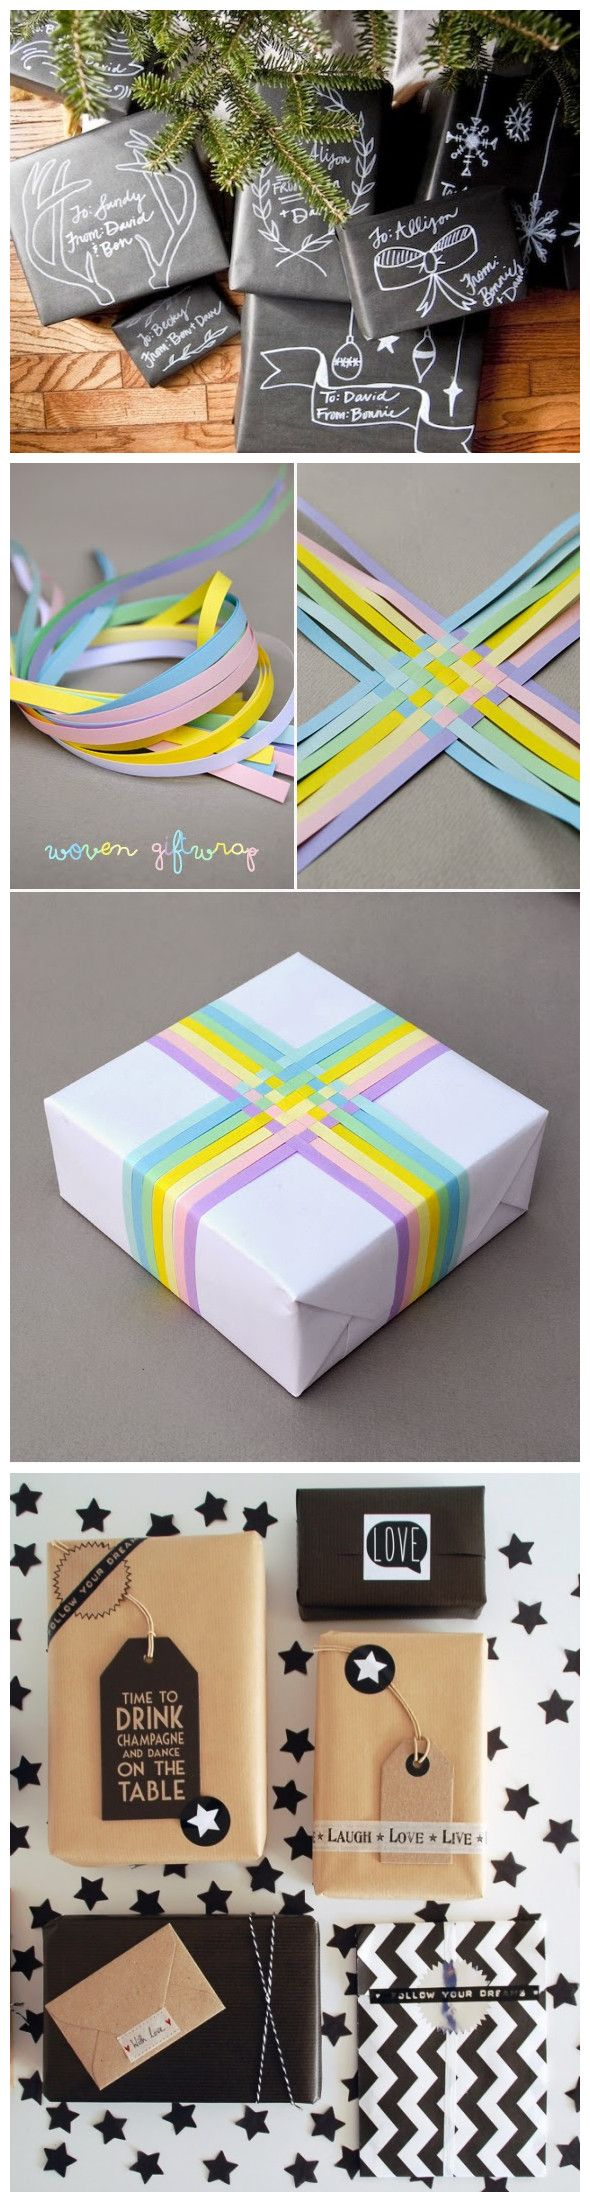 best 25+ mother day gifts ideas on pinterest | mothers day diy